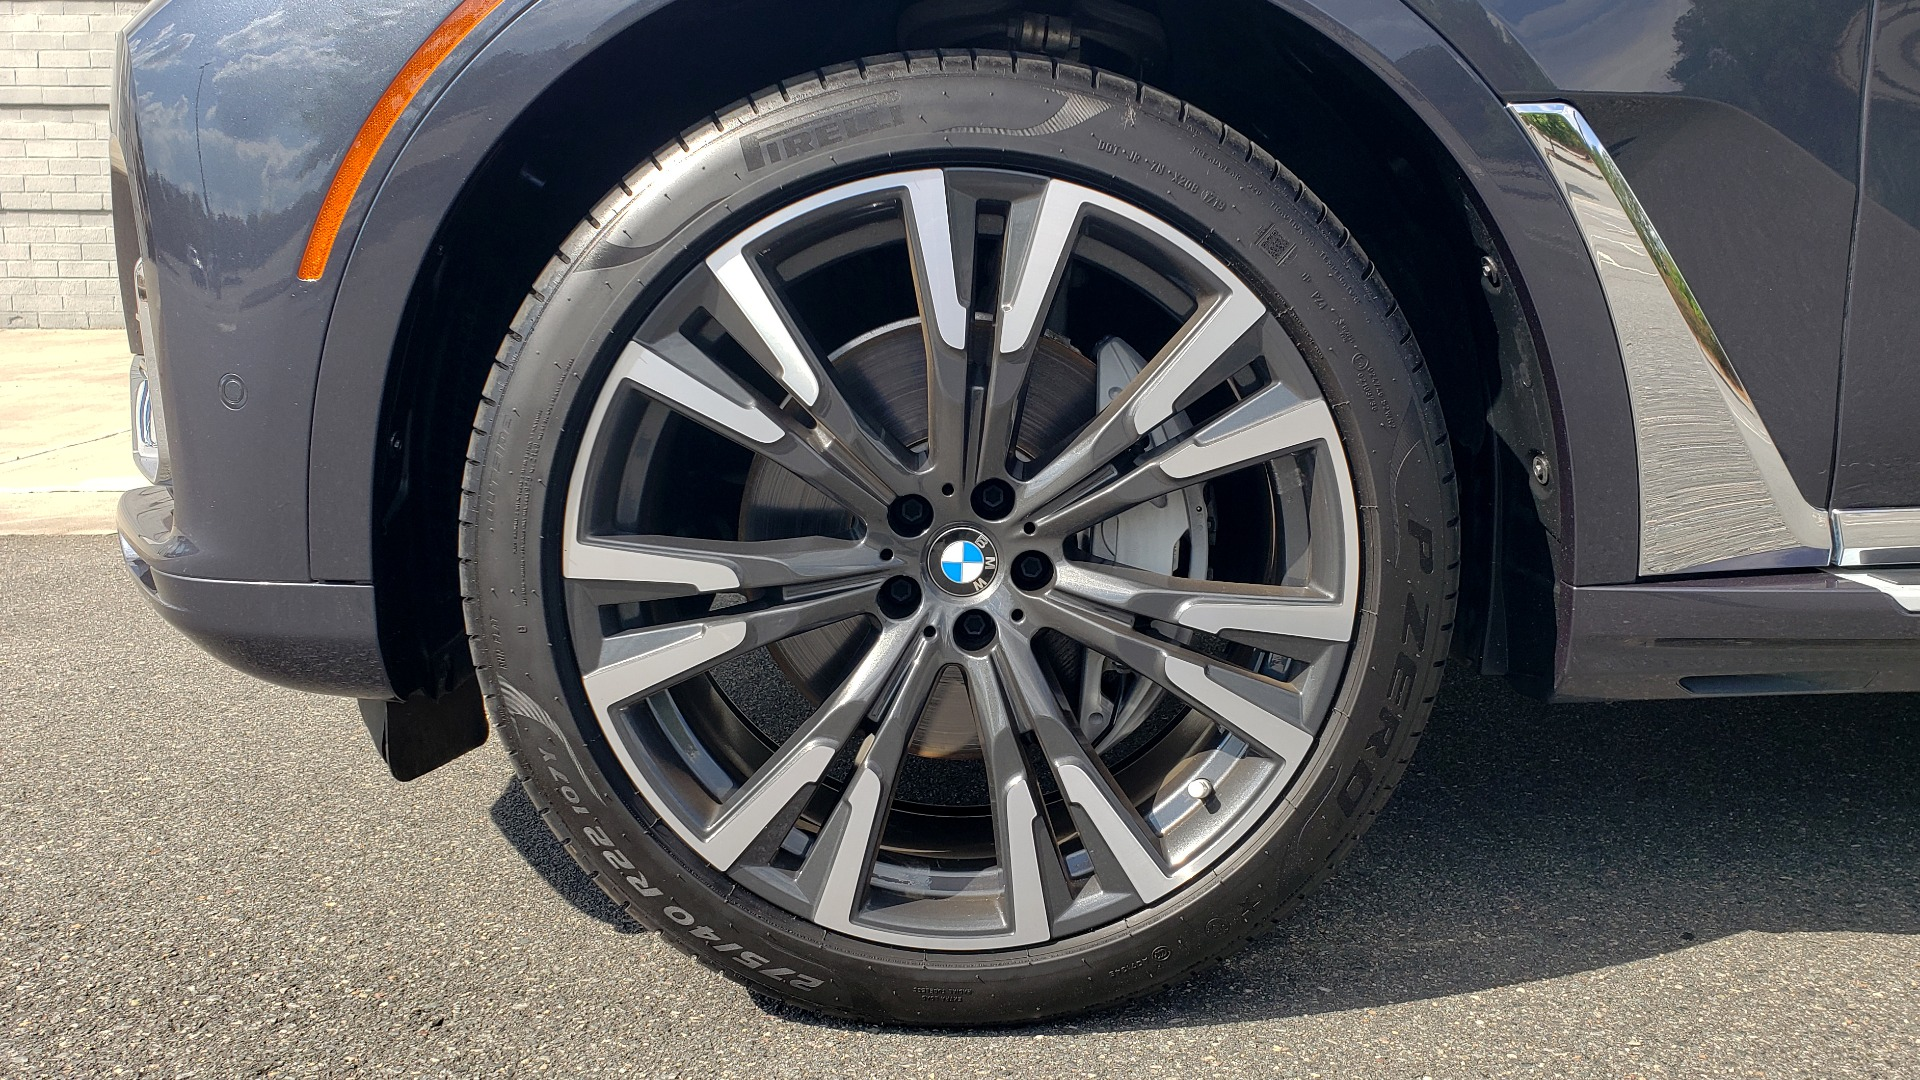 Used 2019 BMW X7 XDRIVE40I PREMIUM / LUXURY / COLD WEATHER / PARK ASST / PANORAMIC SKY / TOW for sale $75,999 at Formula Imports in Charlotte NC 28227 98